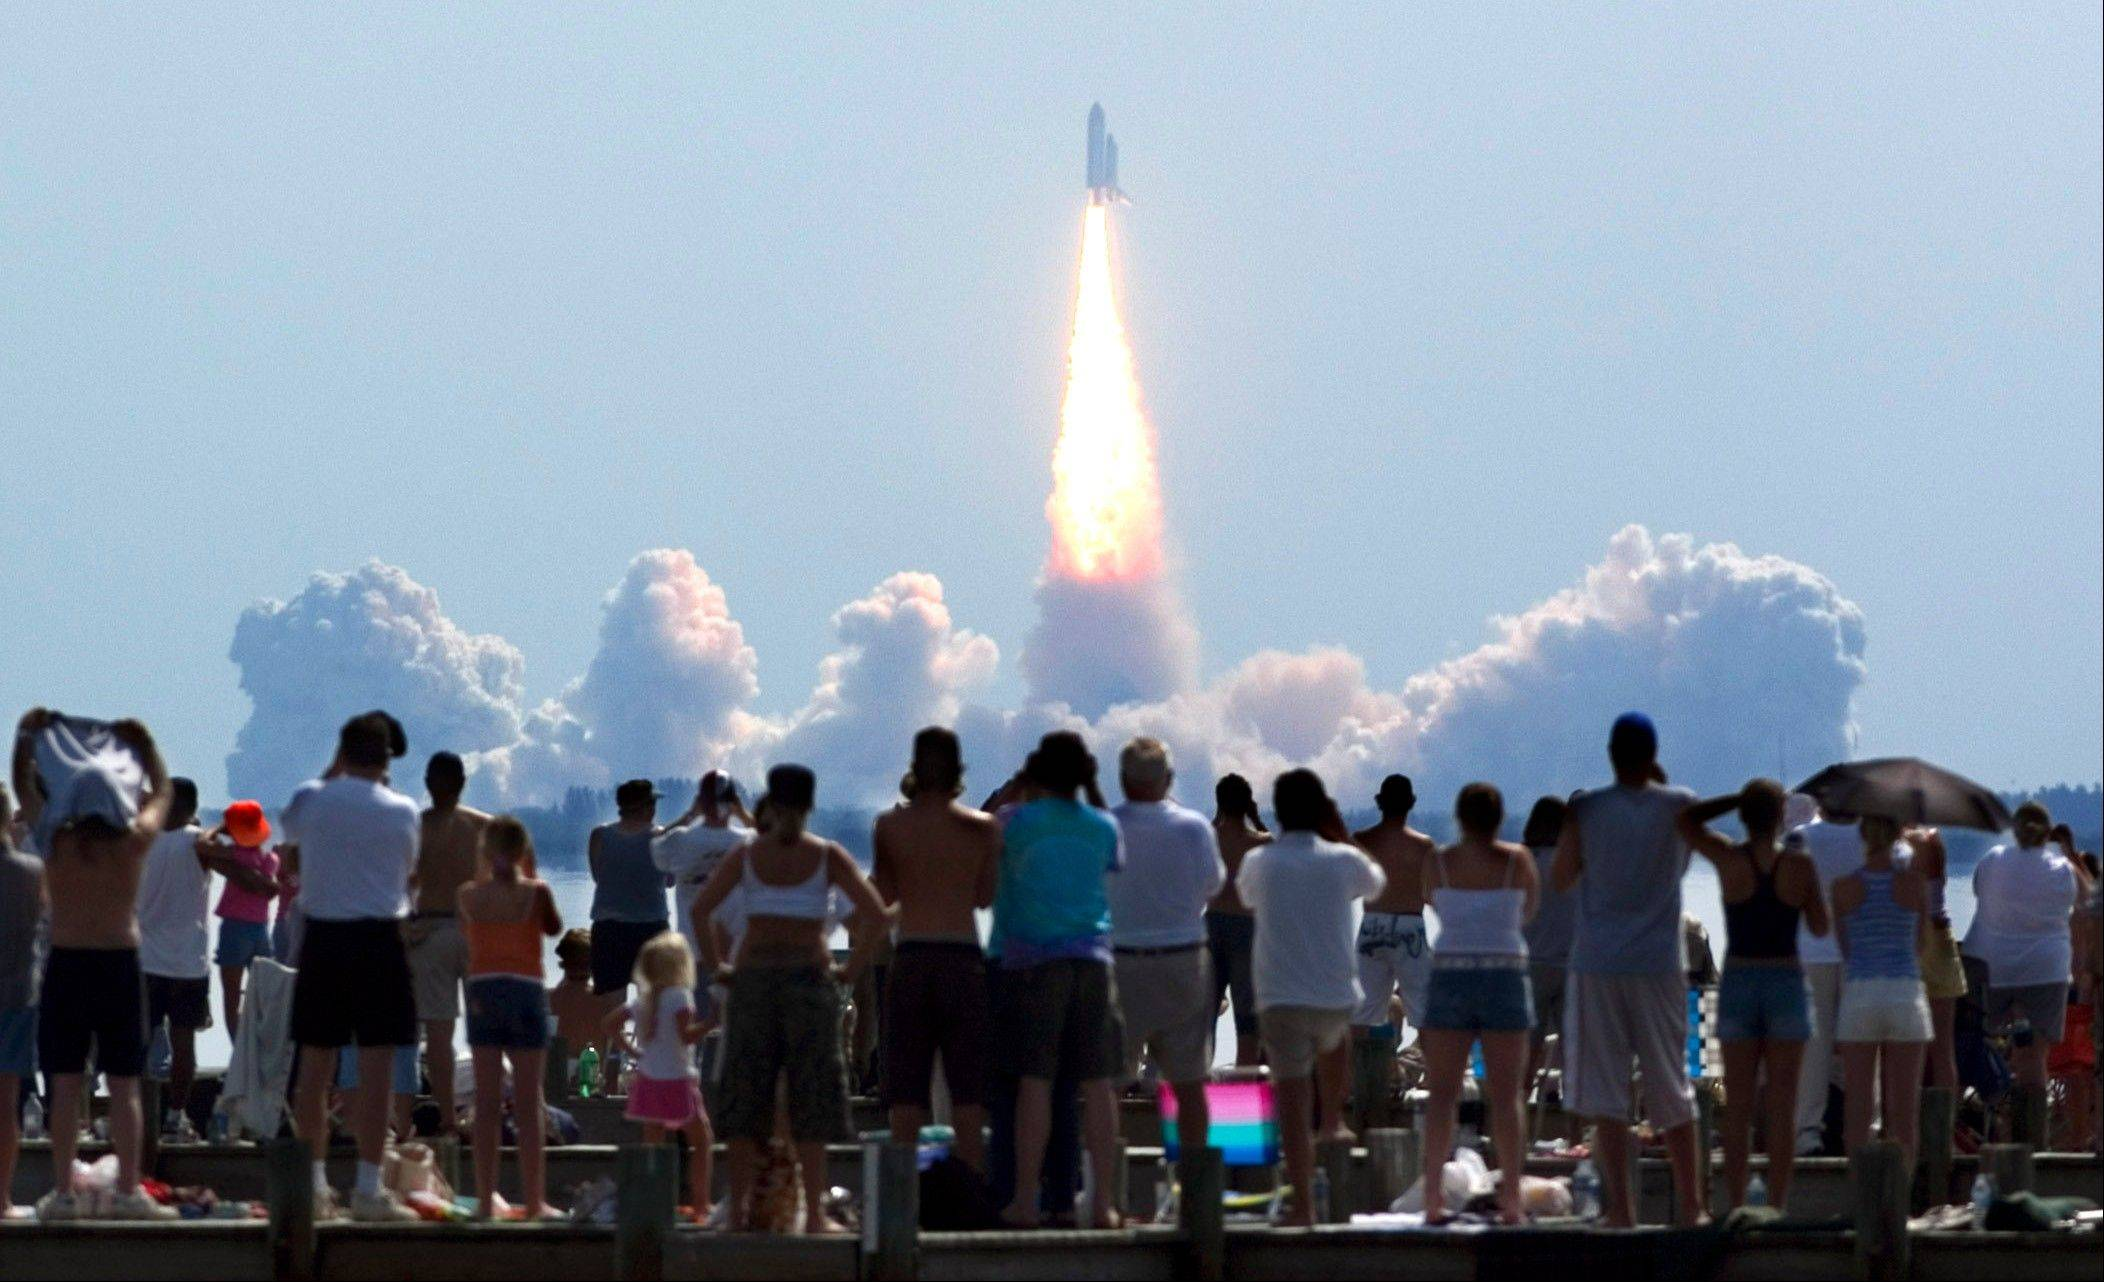 In this Tuesday, July 26, 2005 file picture, crowds watch as the space shuttle Discovery lifts off from Kennedy Space Center in Cape Canaveral, Fla. The seven astronauts launched into orbit on America's first manned space mission since the 2003 Columbia disaster.